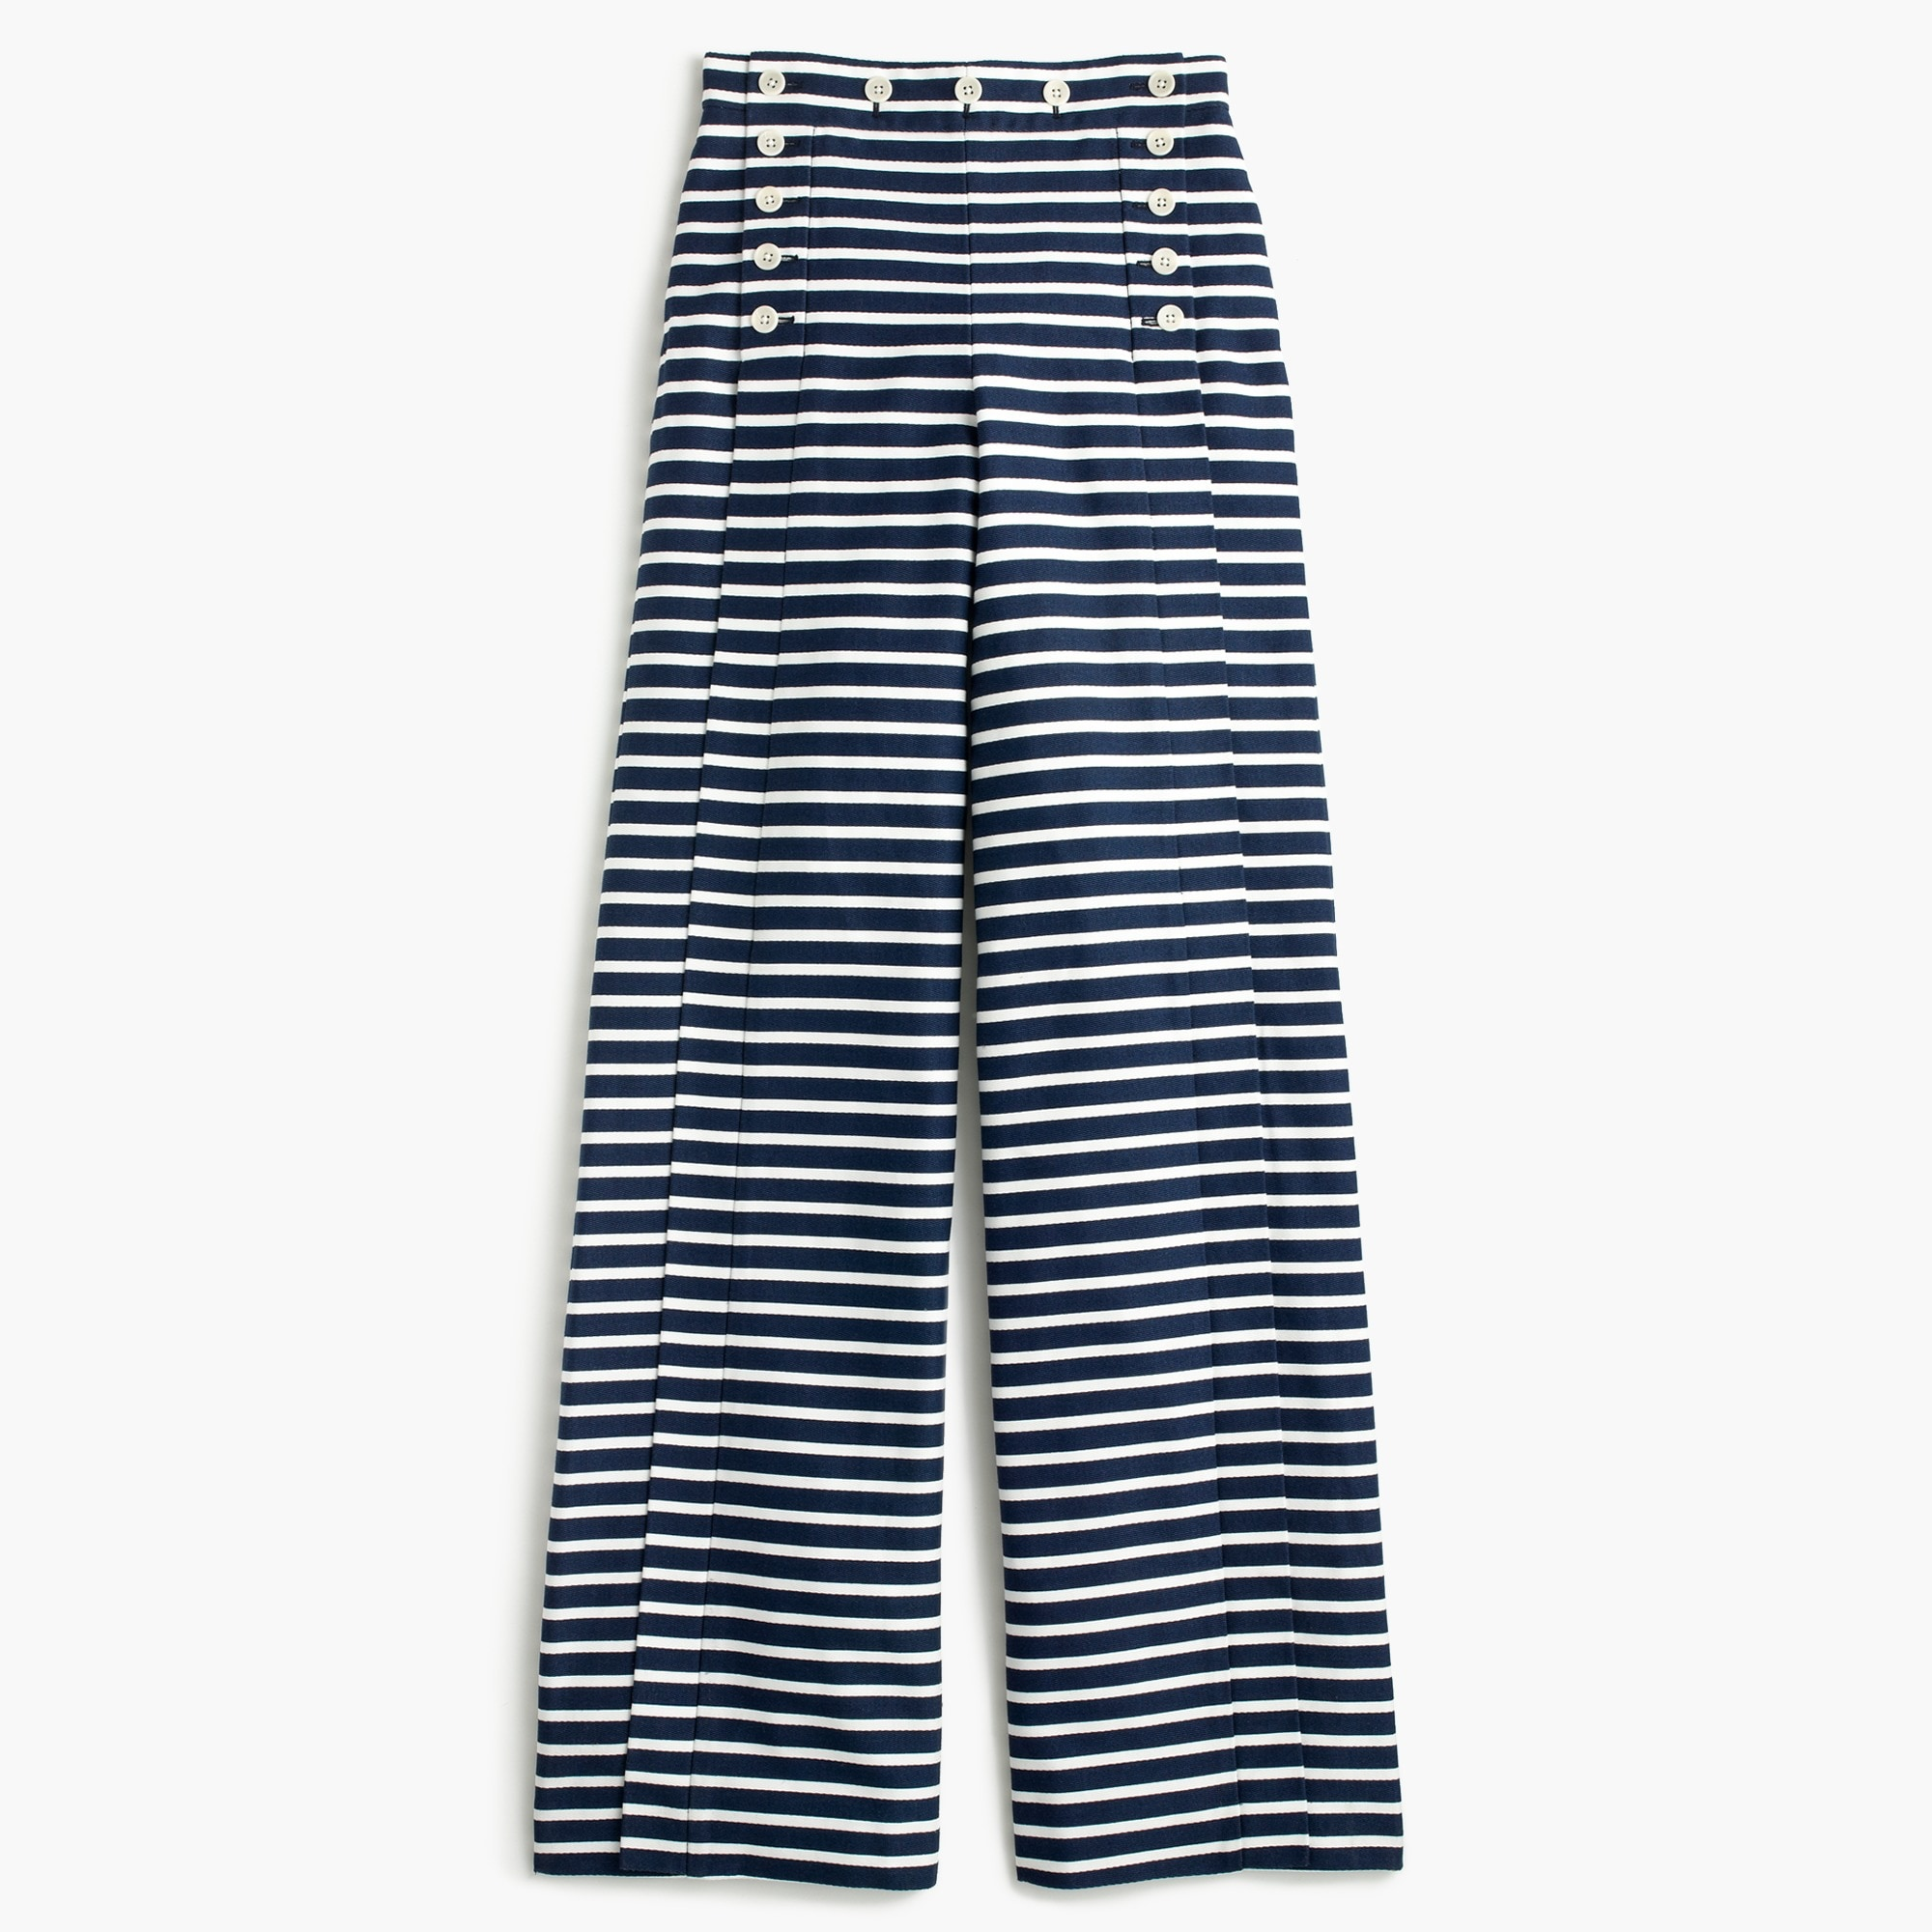 Petite striped sailor pant